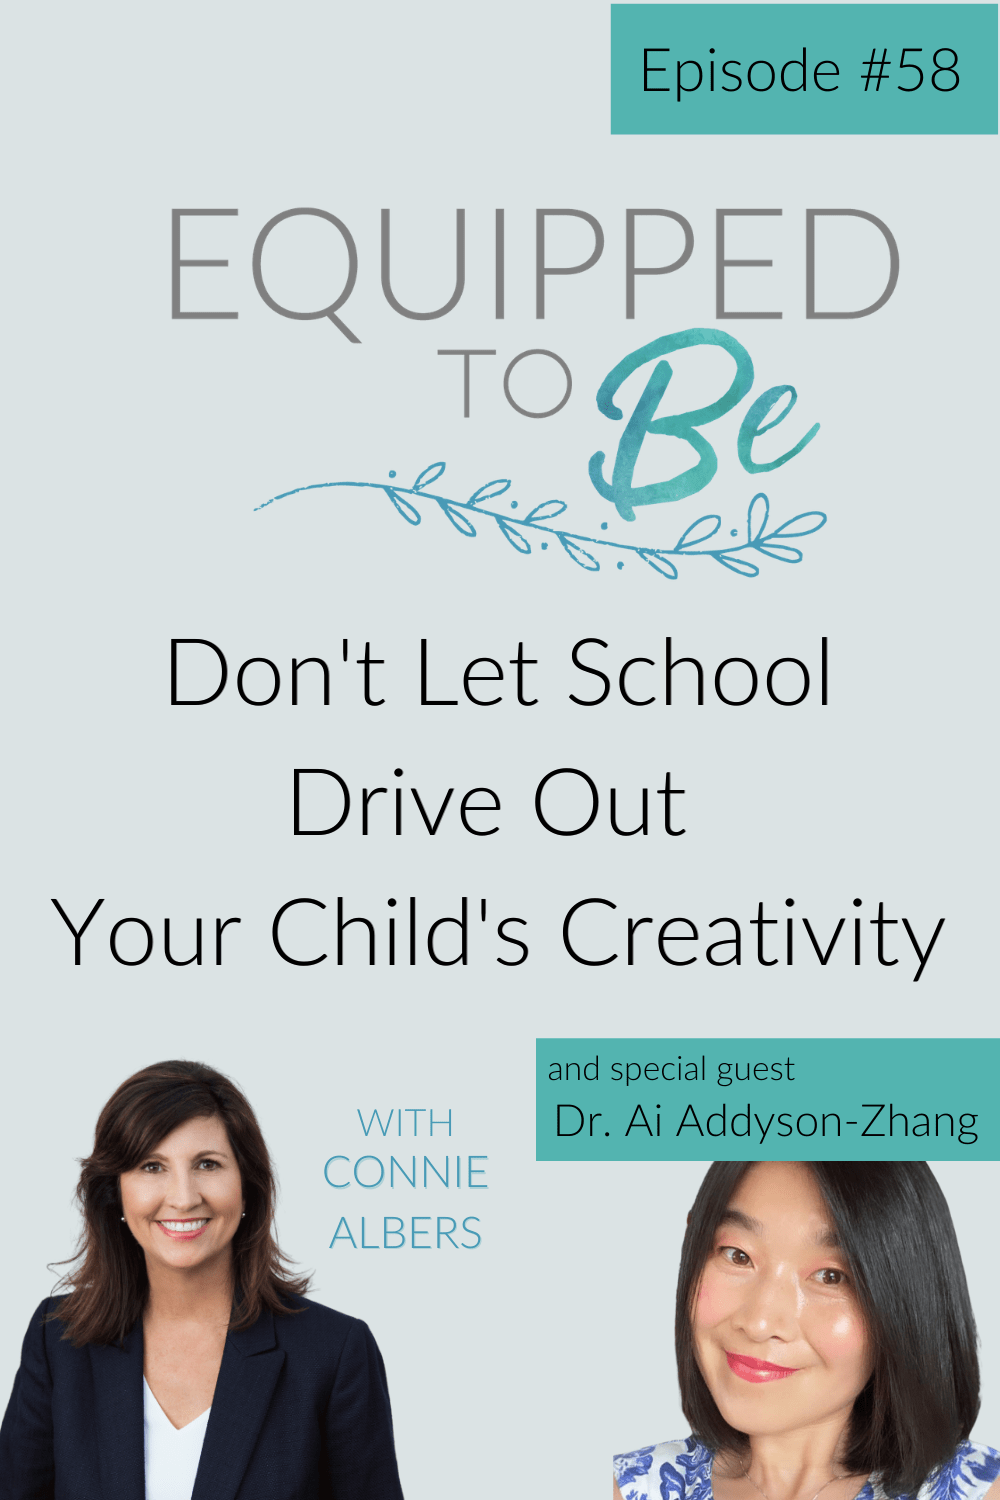 Don\'t Let School Drive Out Your Child\'s Creativity with Dr. Ai Addyson-Zhang Part II - ETB #58